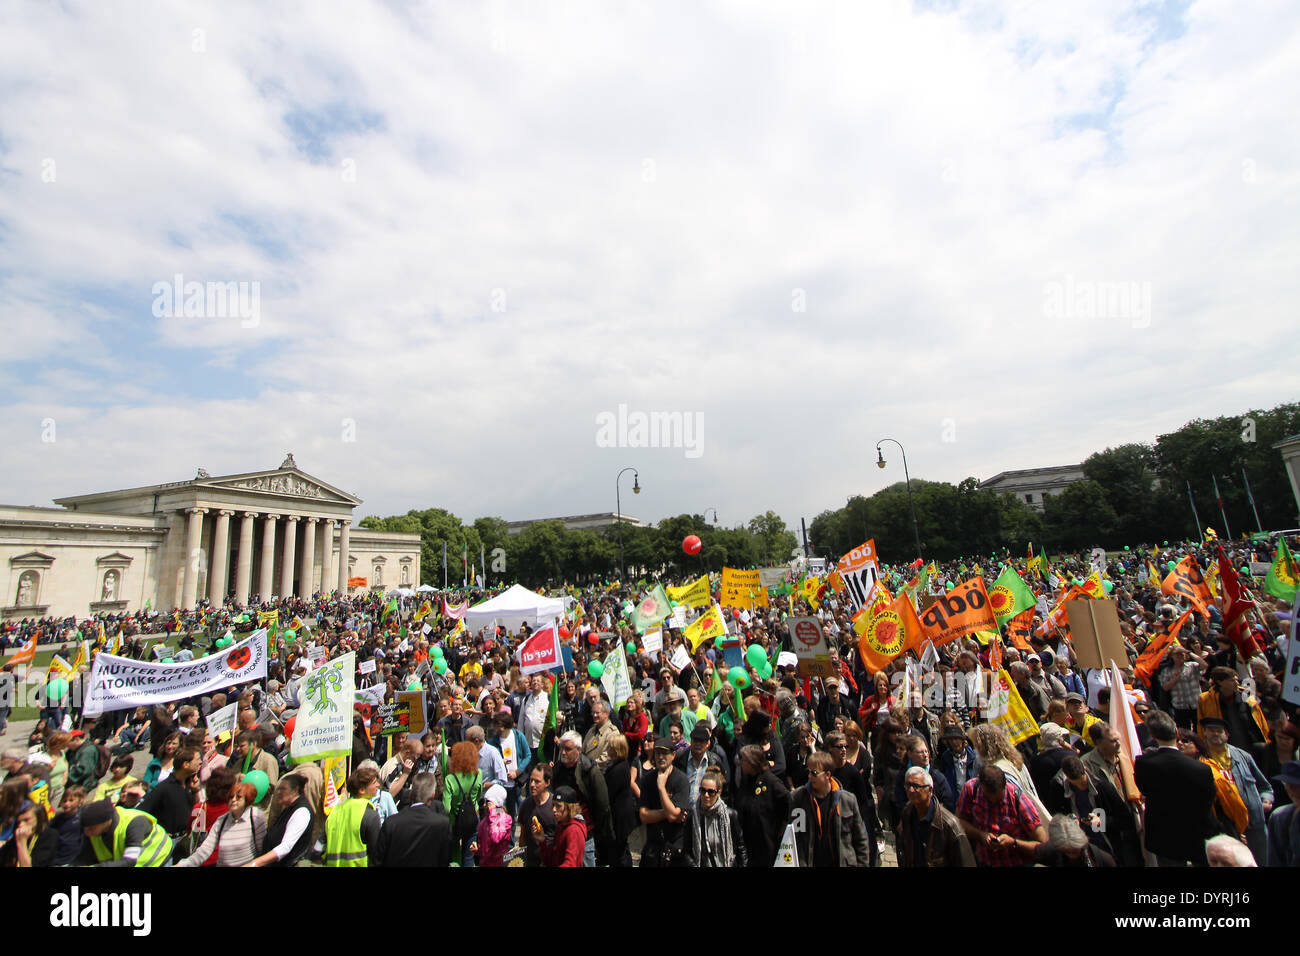 An anti-nuclear demonstration in Munich, 2011 Stock Photo